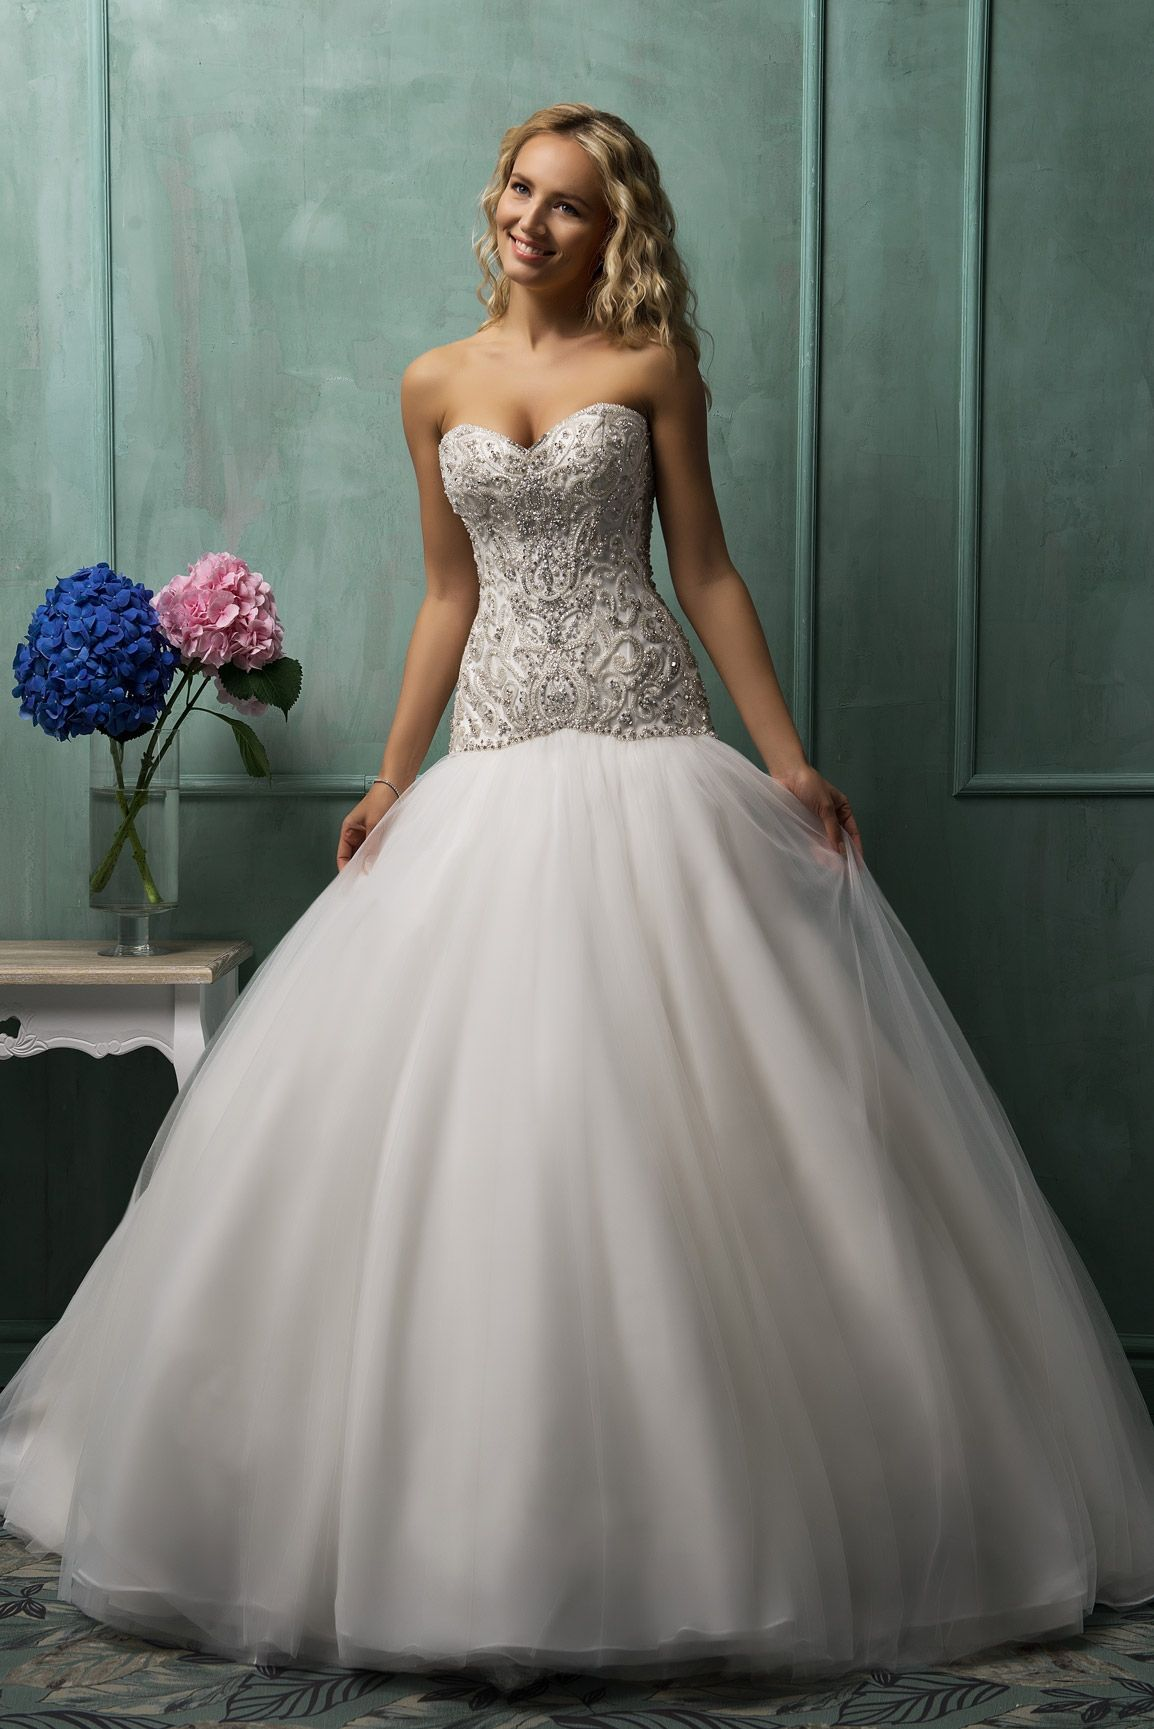 The charming and romantic Aline strapless sweetheart neck